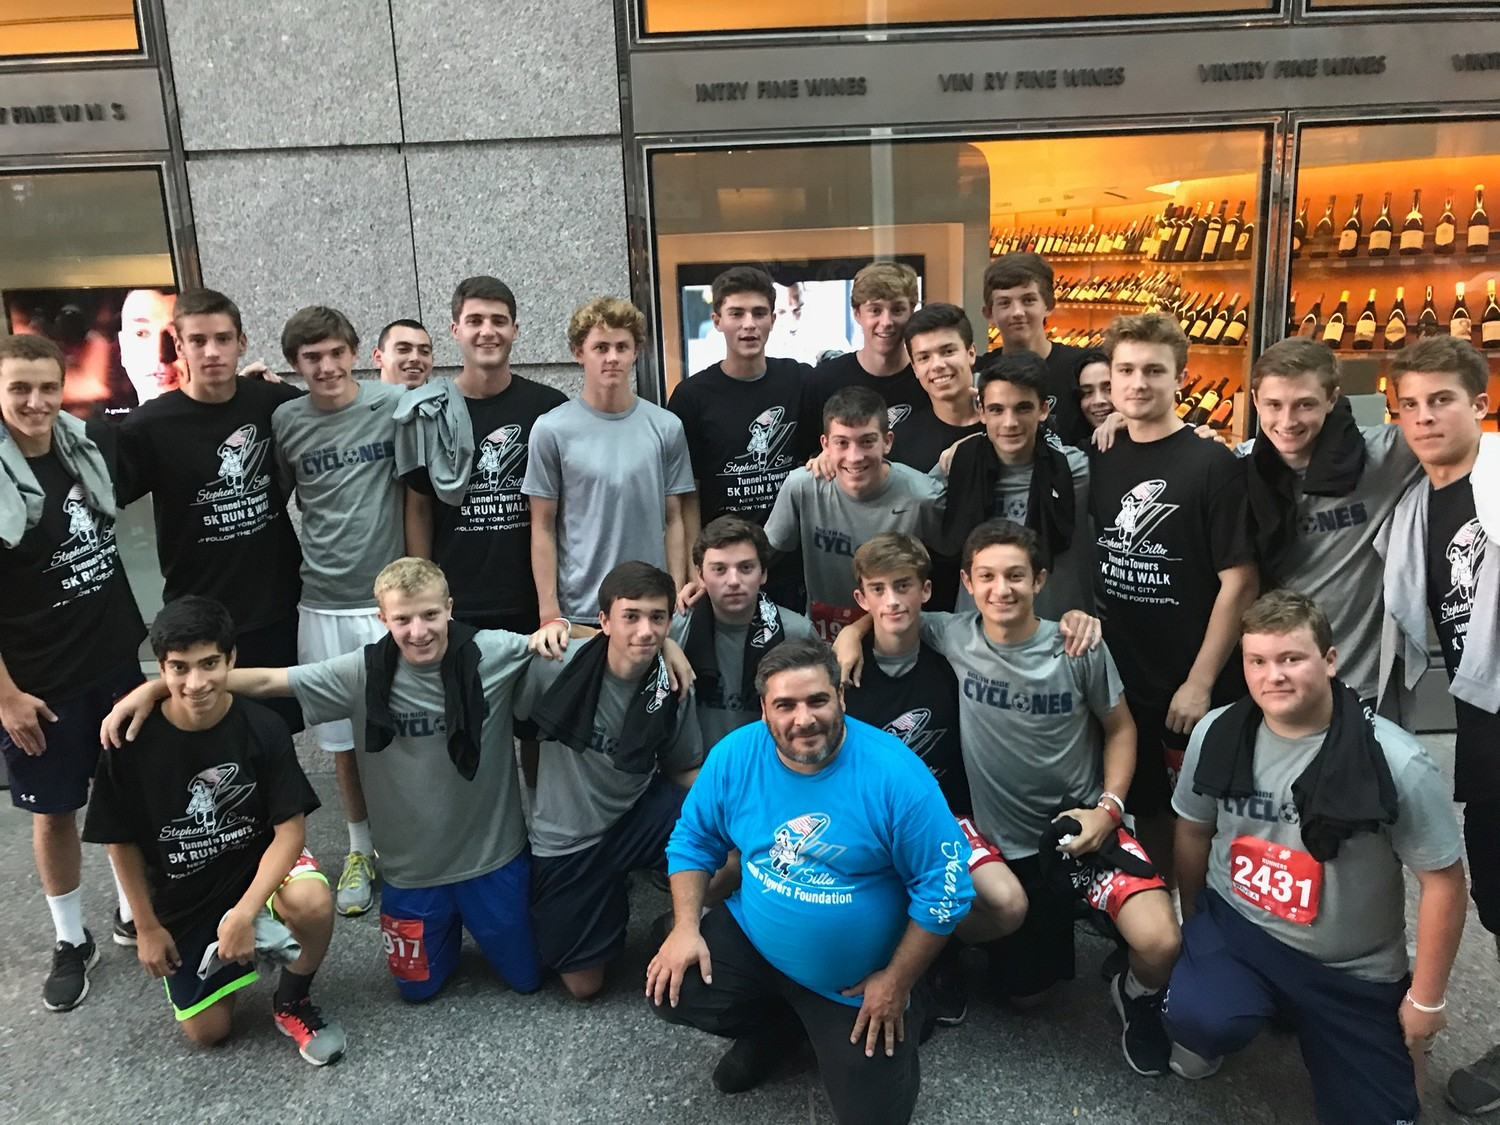 The SSHS Boys Varsity Soccer team after racing in the Tunnel to Towers 5K Run.